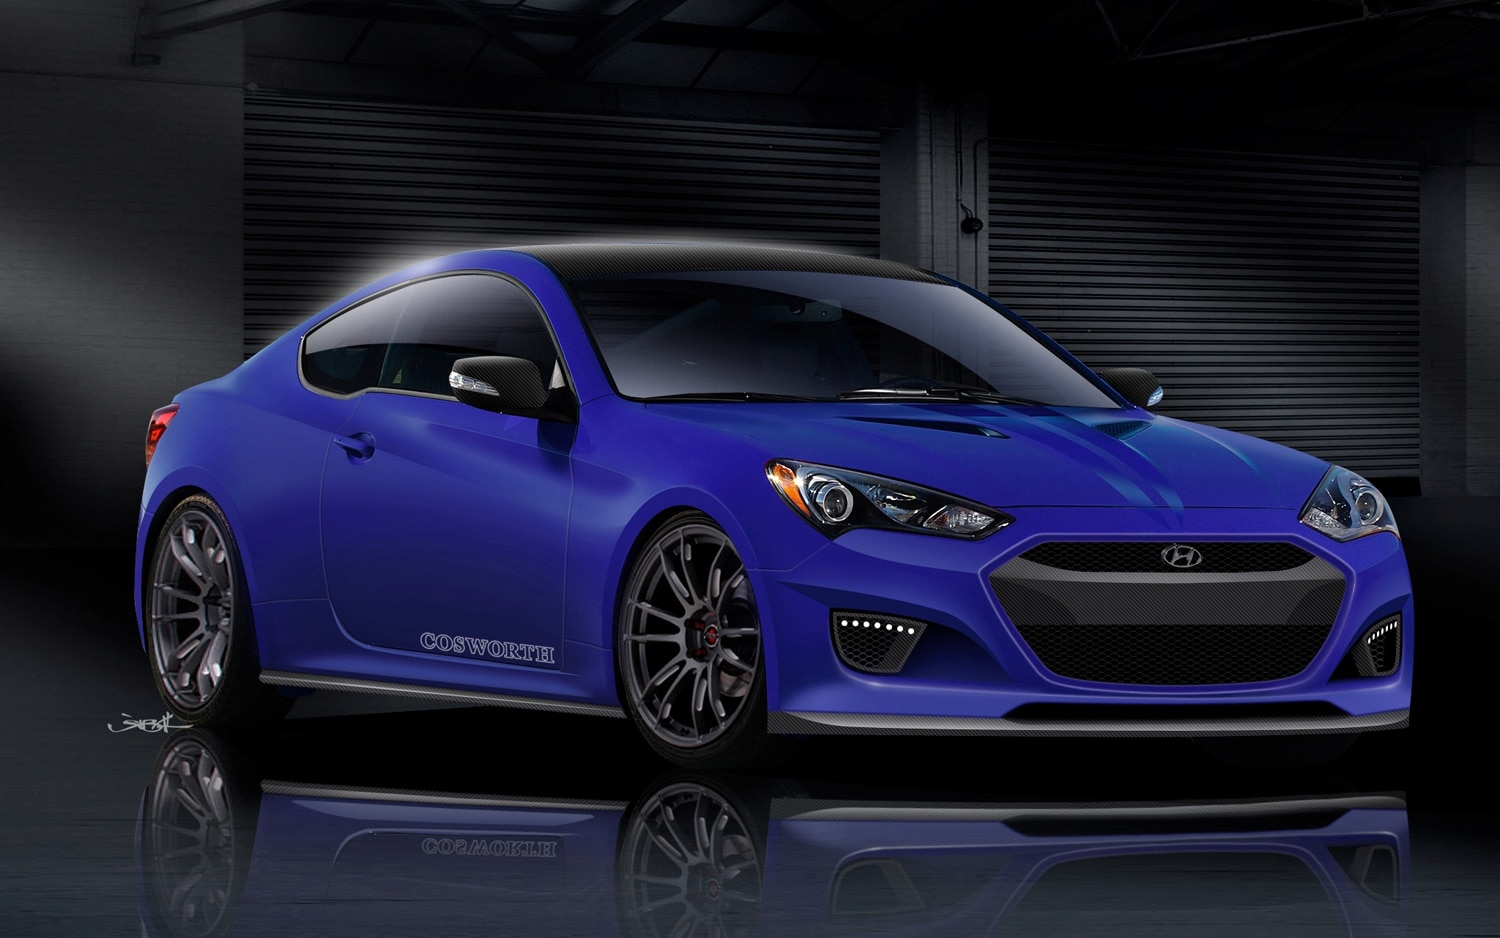 2013 Hyundai Genesis Coupe Cosworth Genesis Racing Series CGRS 2012 SEMA Show Car Right Front Image 111